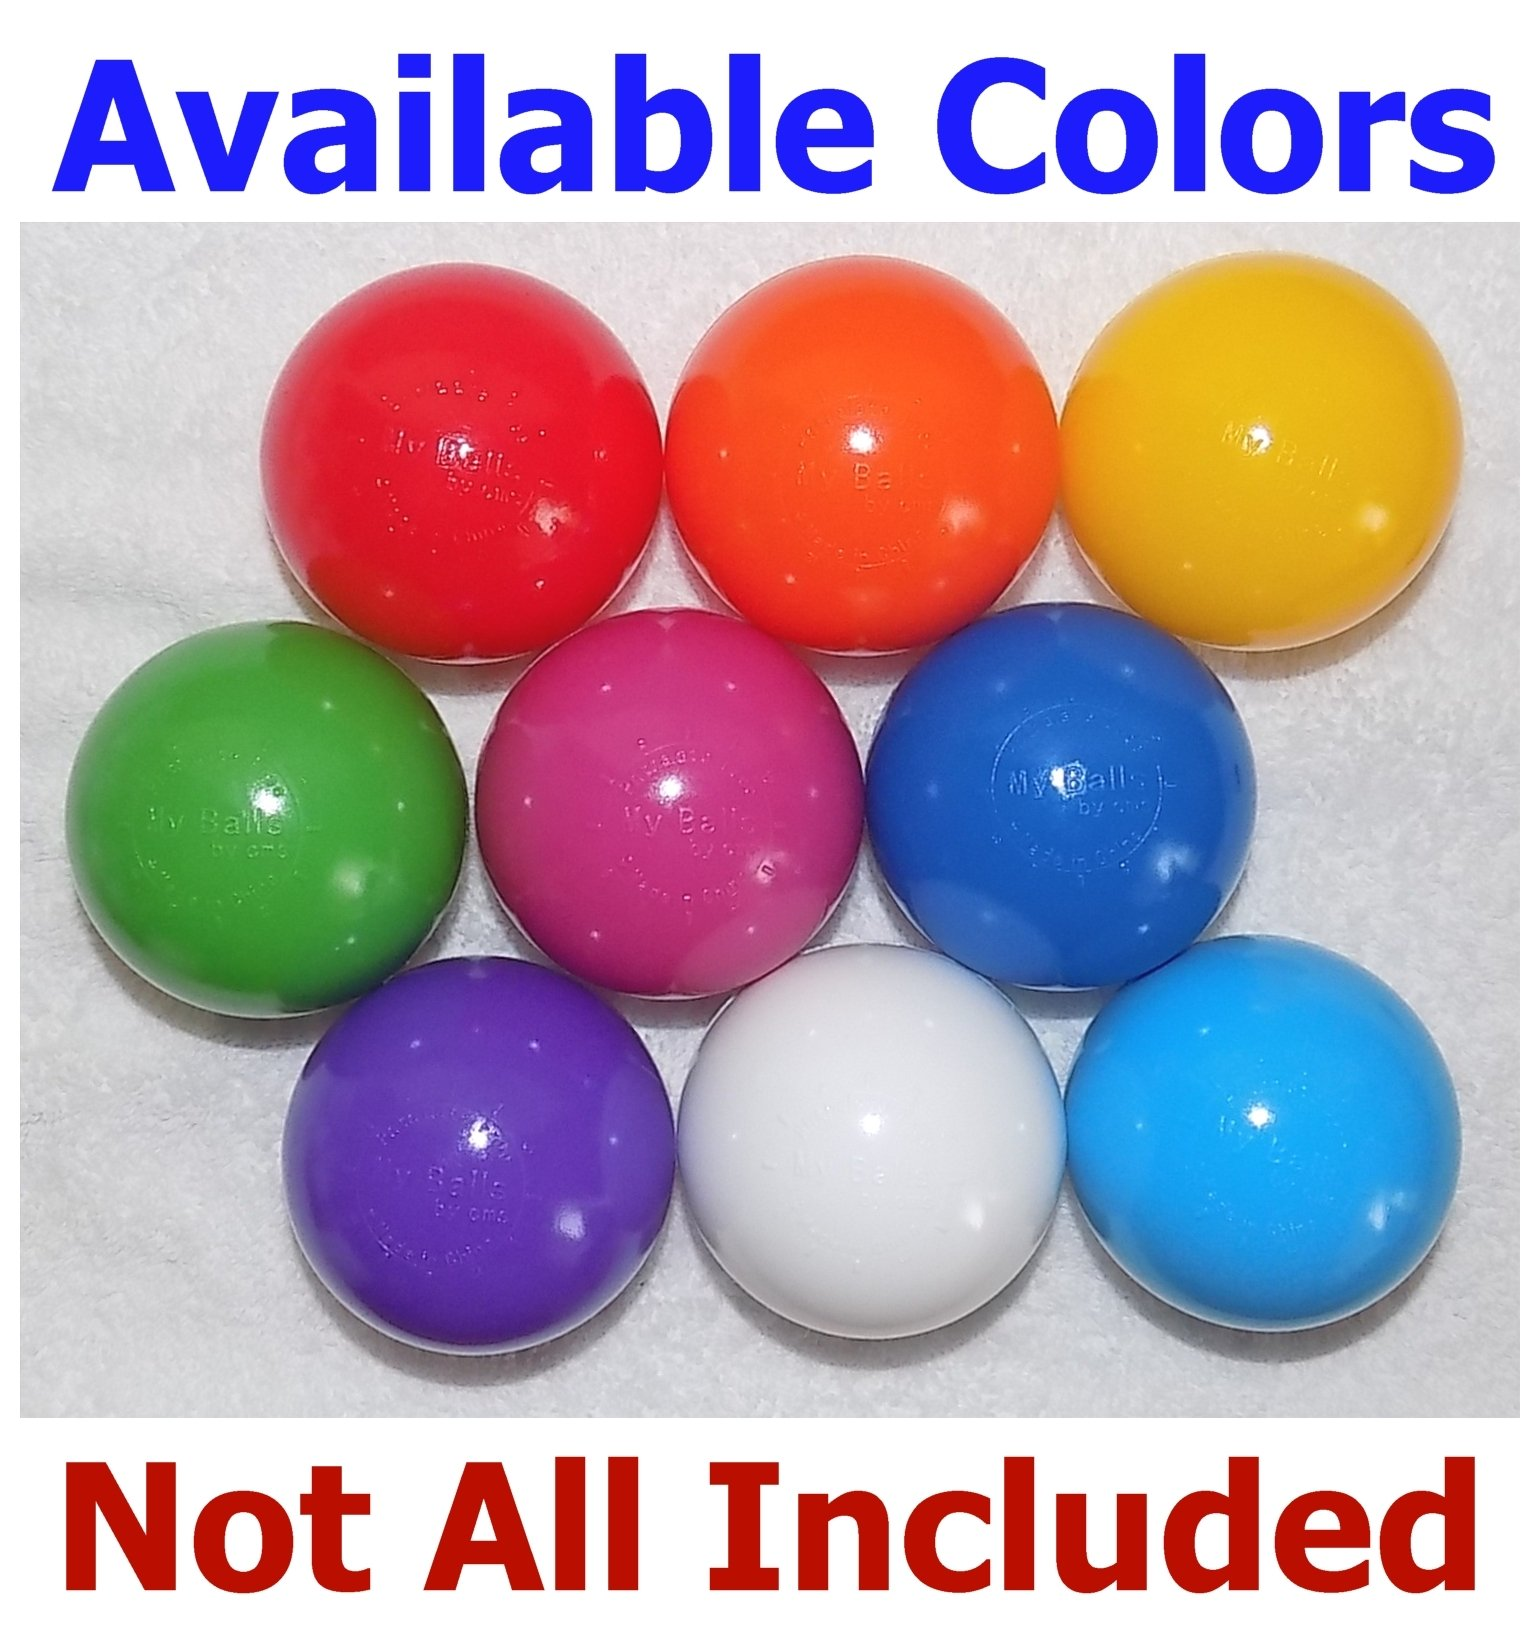 My Balls Pack of 600 Jumbo 3'' Red/Yellow/Green Colors of Season Heavy Duty Commercial Grade Crush-Proof Ball Pit Balls - Phthalate Free BPA Free Non-Recycled Plastic by My Balls (Image #5)